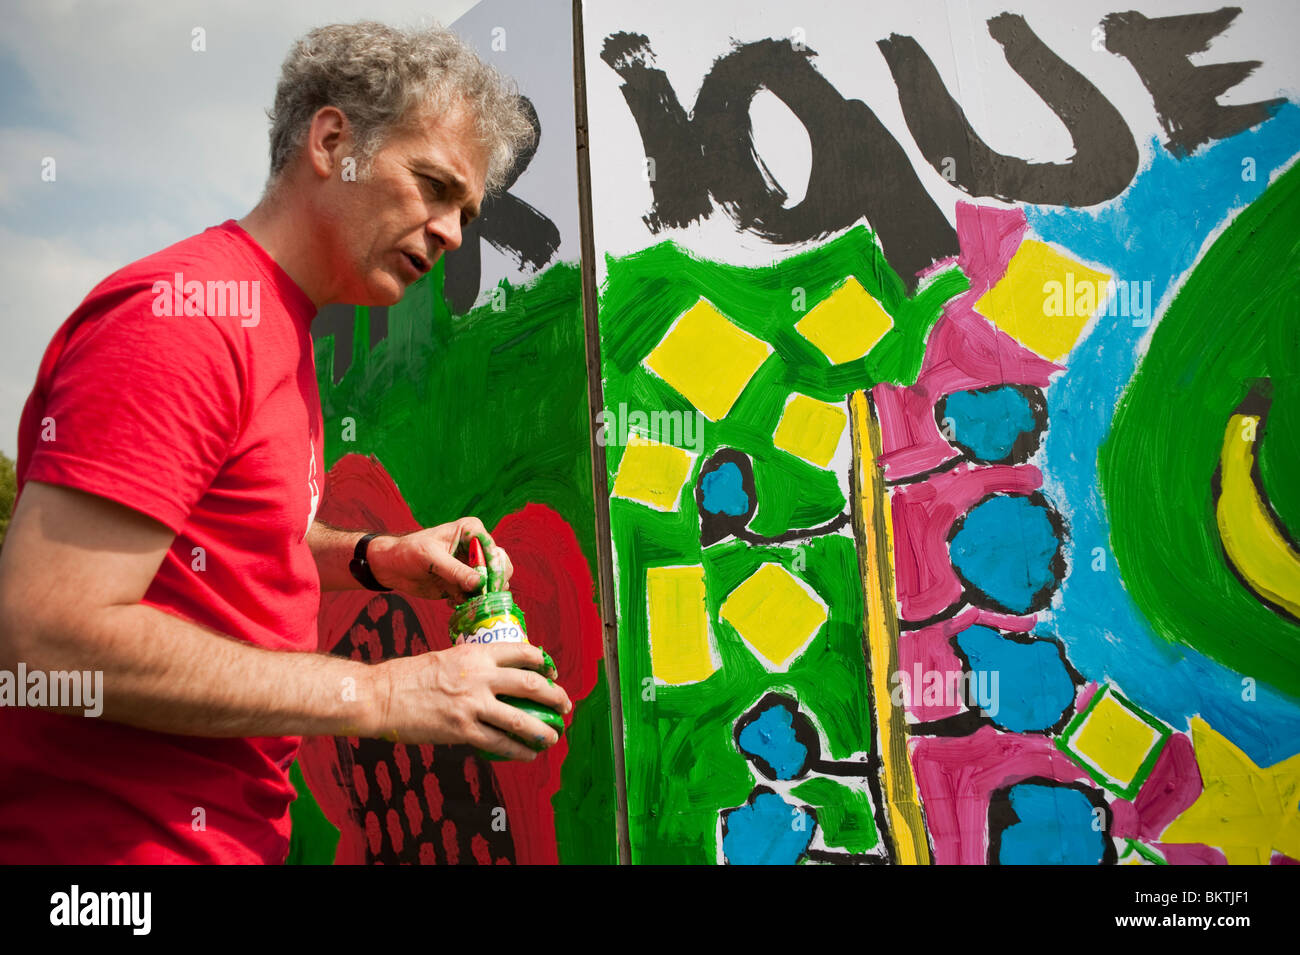 Celebration of World 'Fair Trade' Day, with Man Painting Wall Mural in 'La Villette' Park, - Stock Image